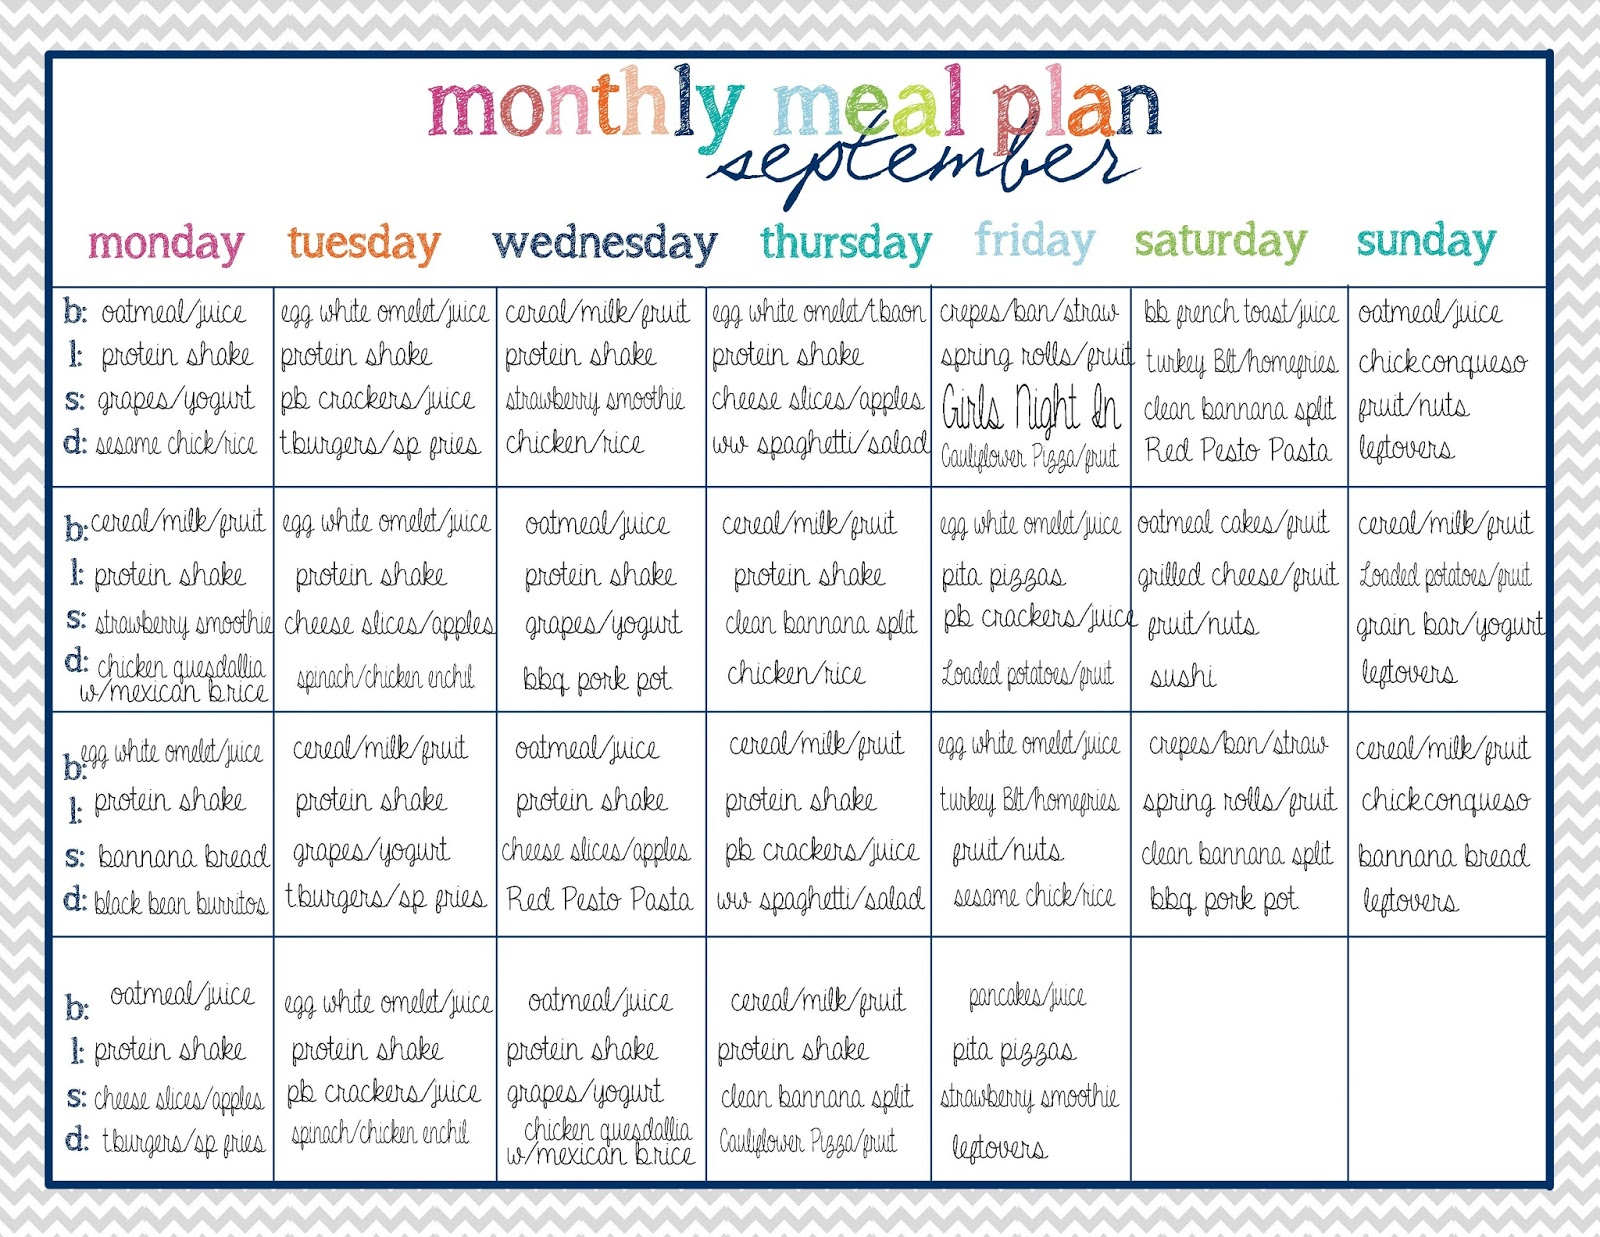 Healthy Weekly Meal Planner With Grocery List On A Budget  Menu For The Week Template